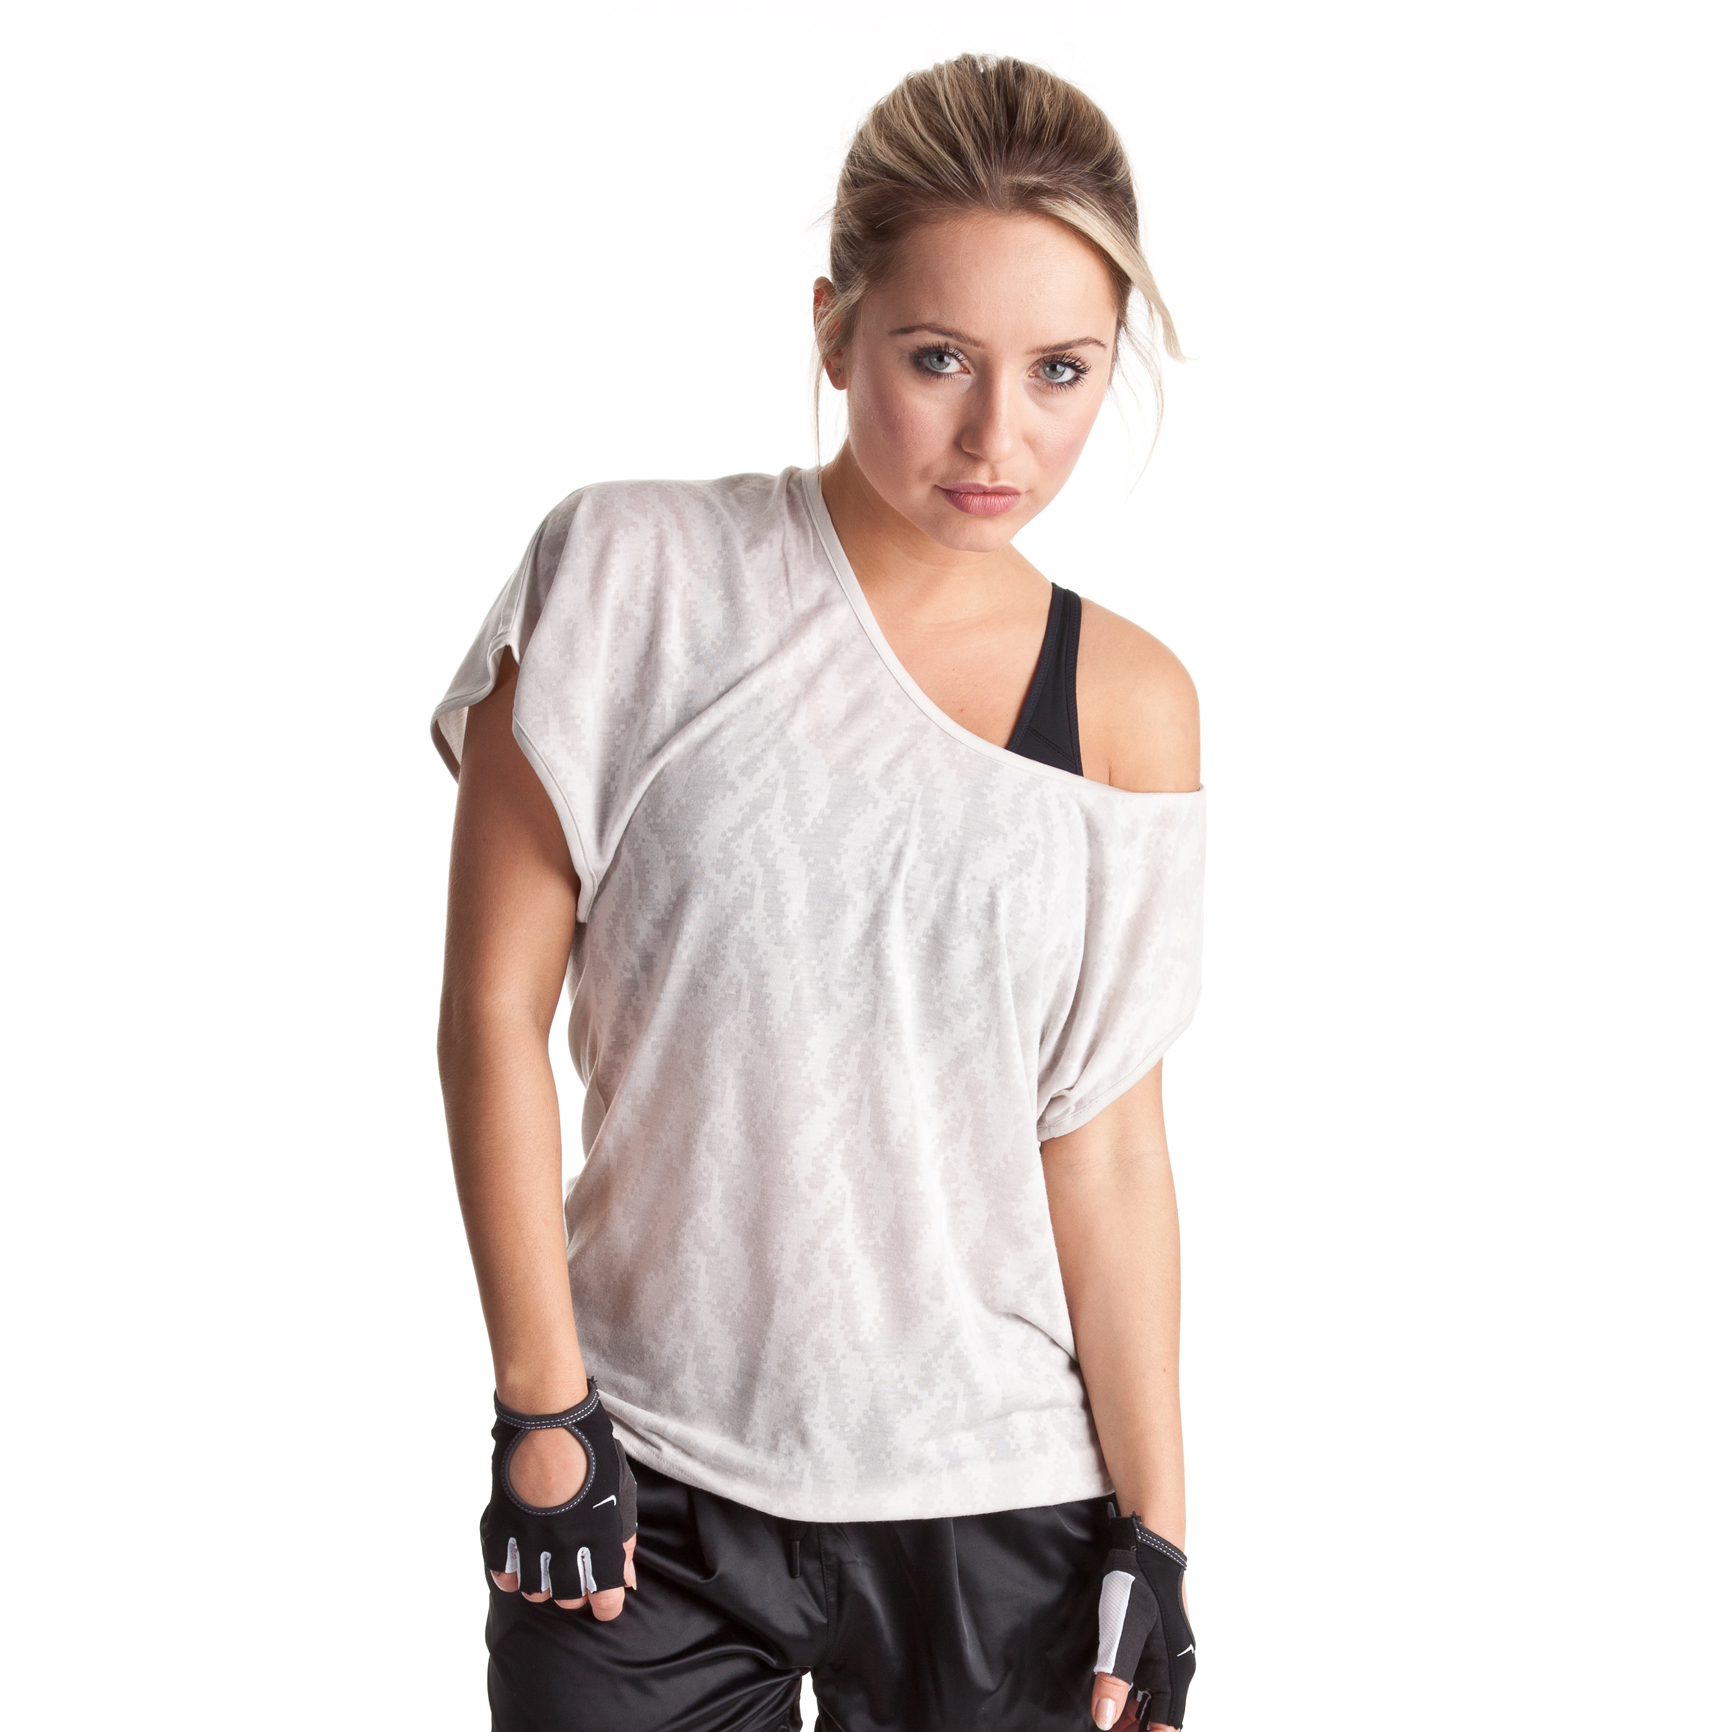 Nike Sweet Burnout T-Shirt - Light Bone/Matte Silver - Womens